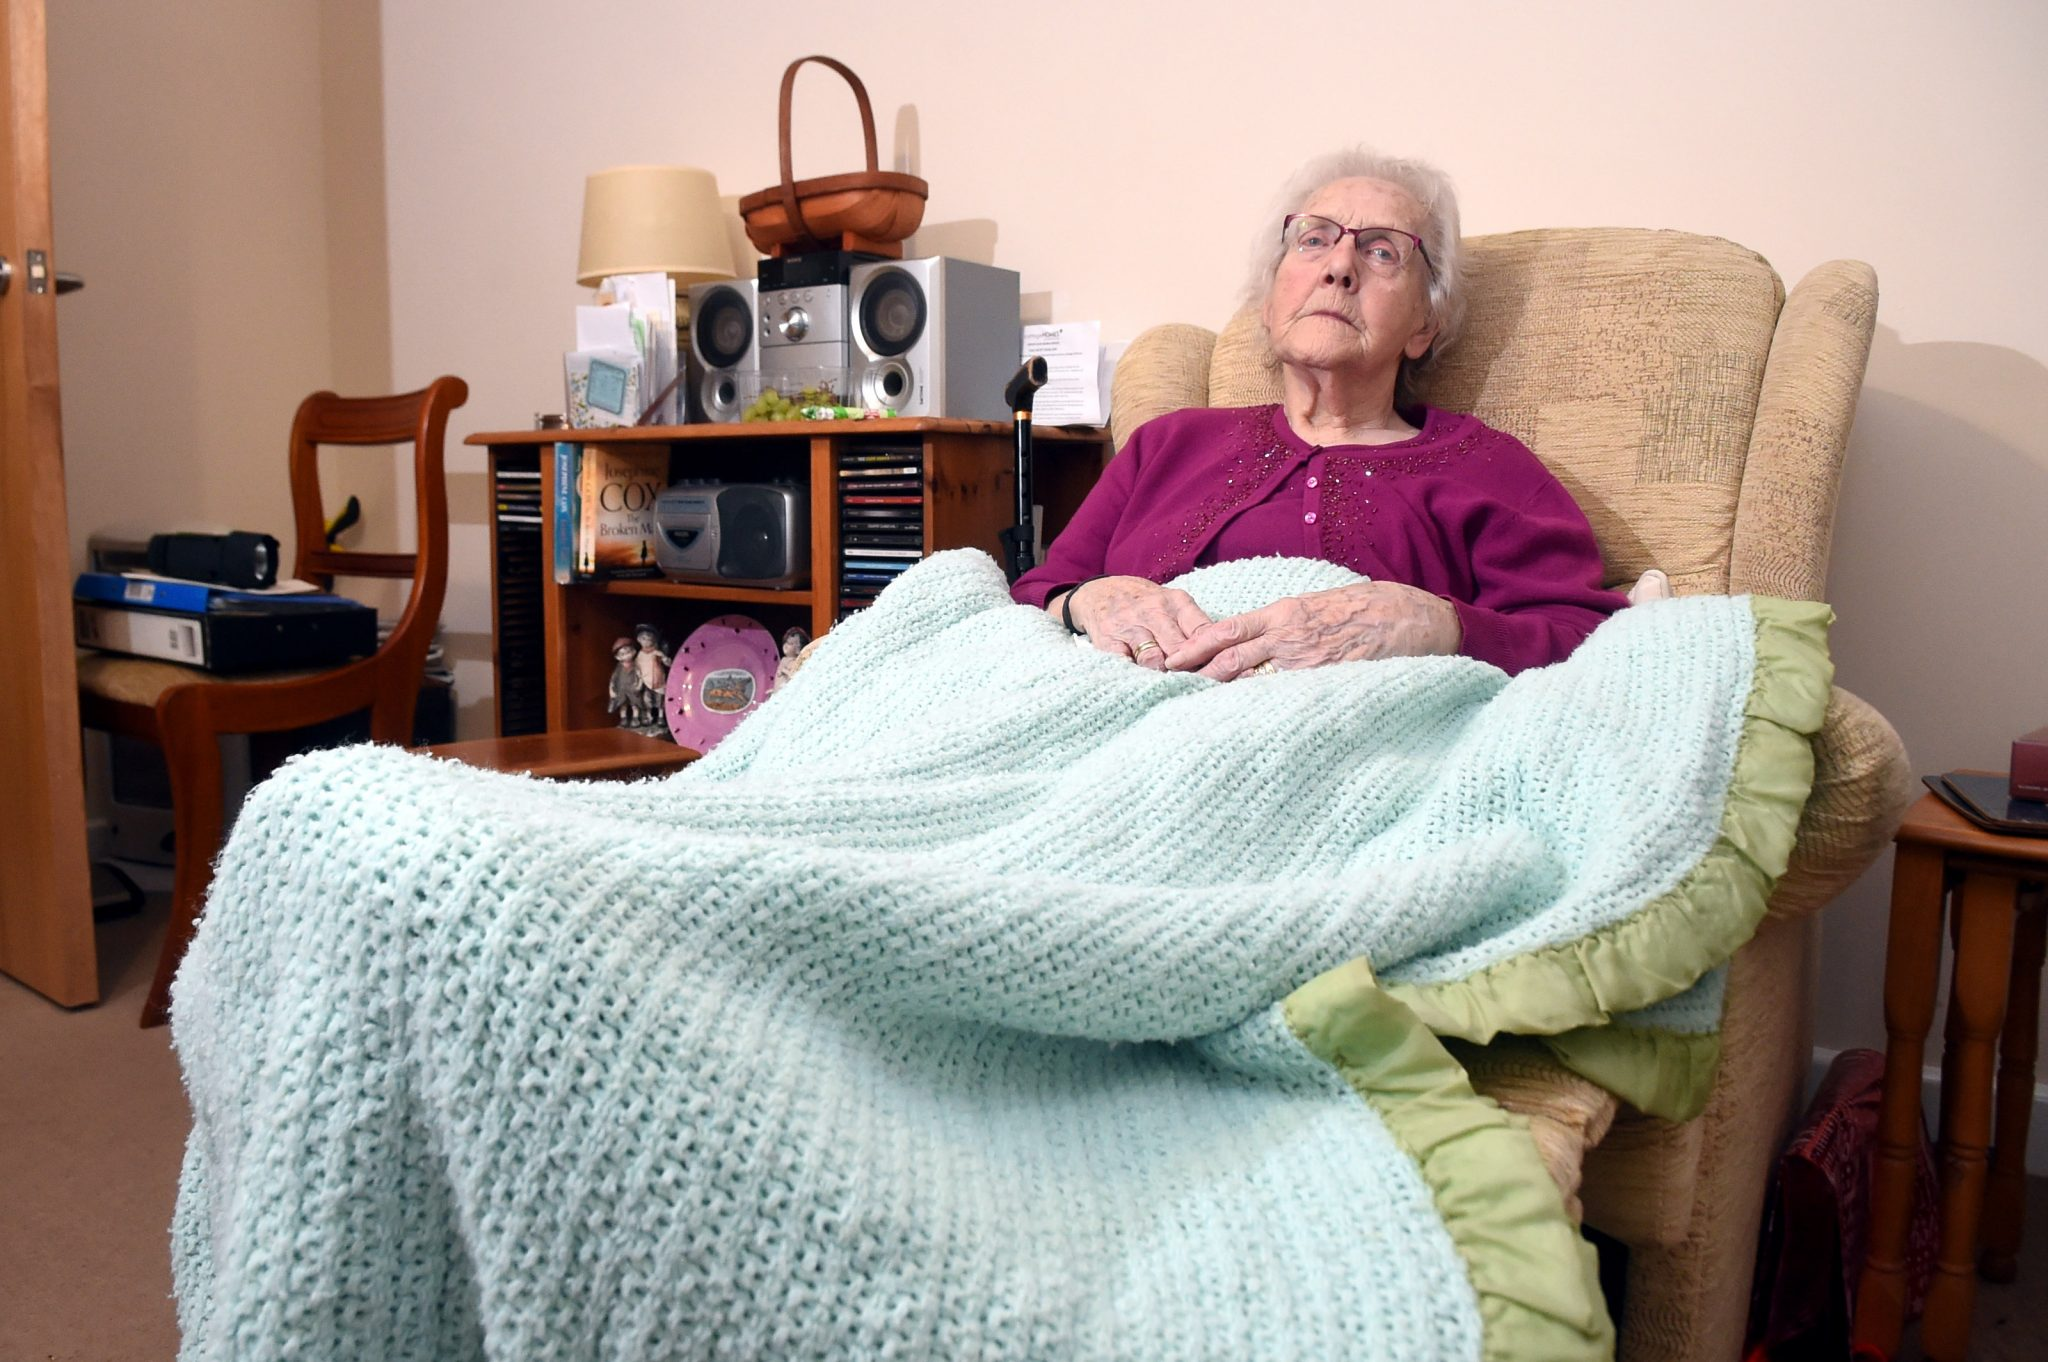 Bed Delivery Blunder Means Frail 93 Year Old Gran Forced